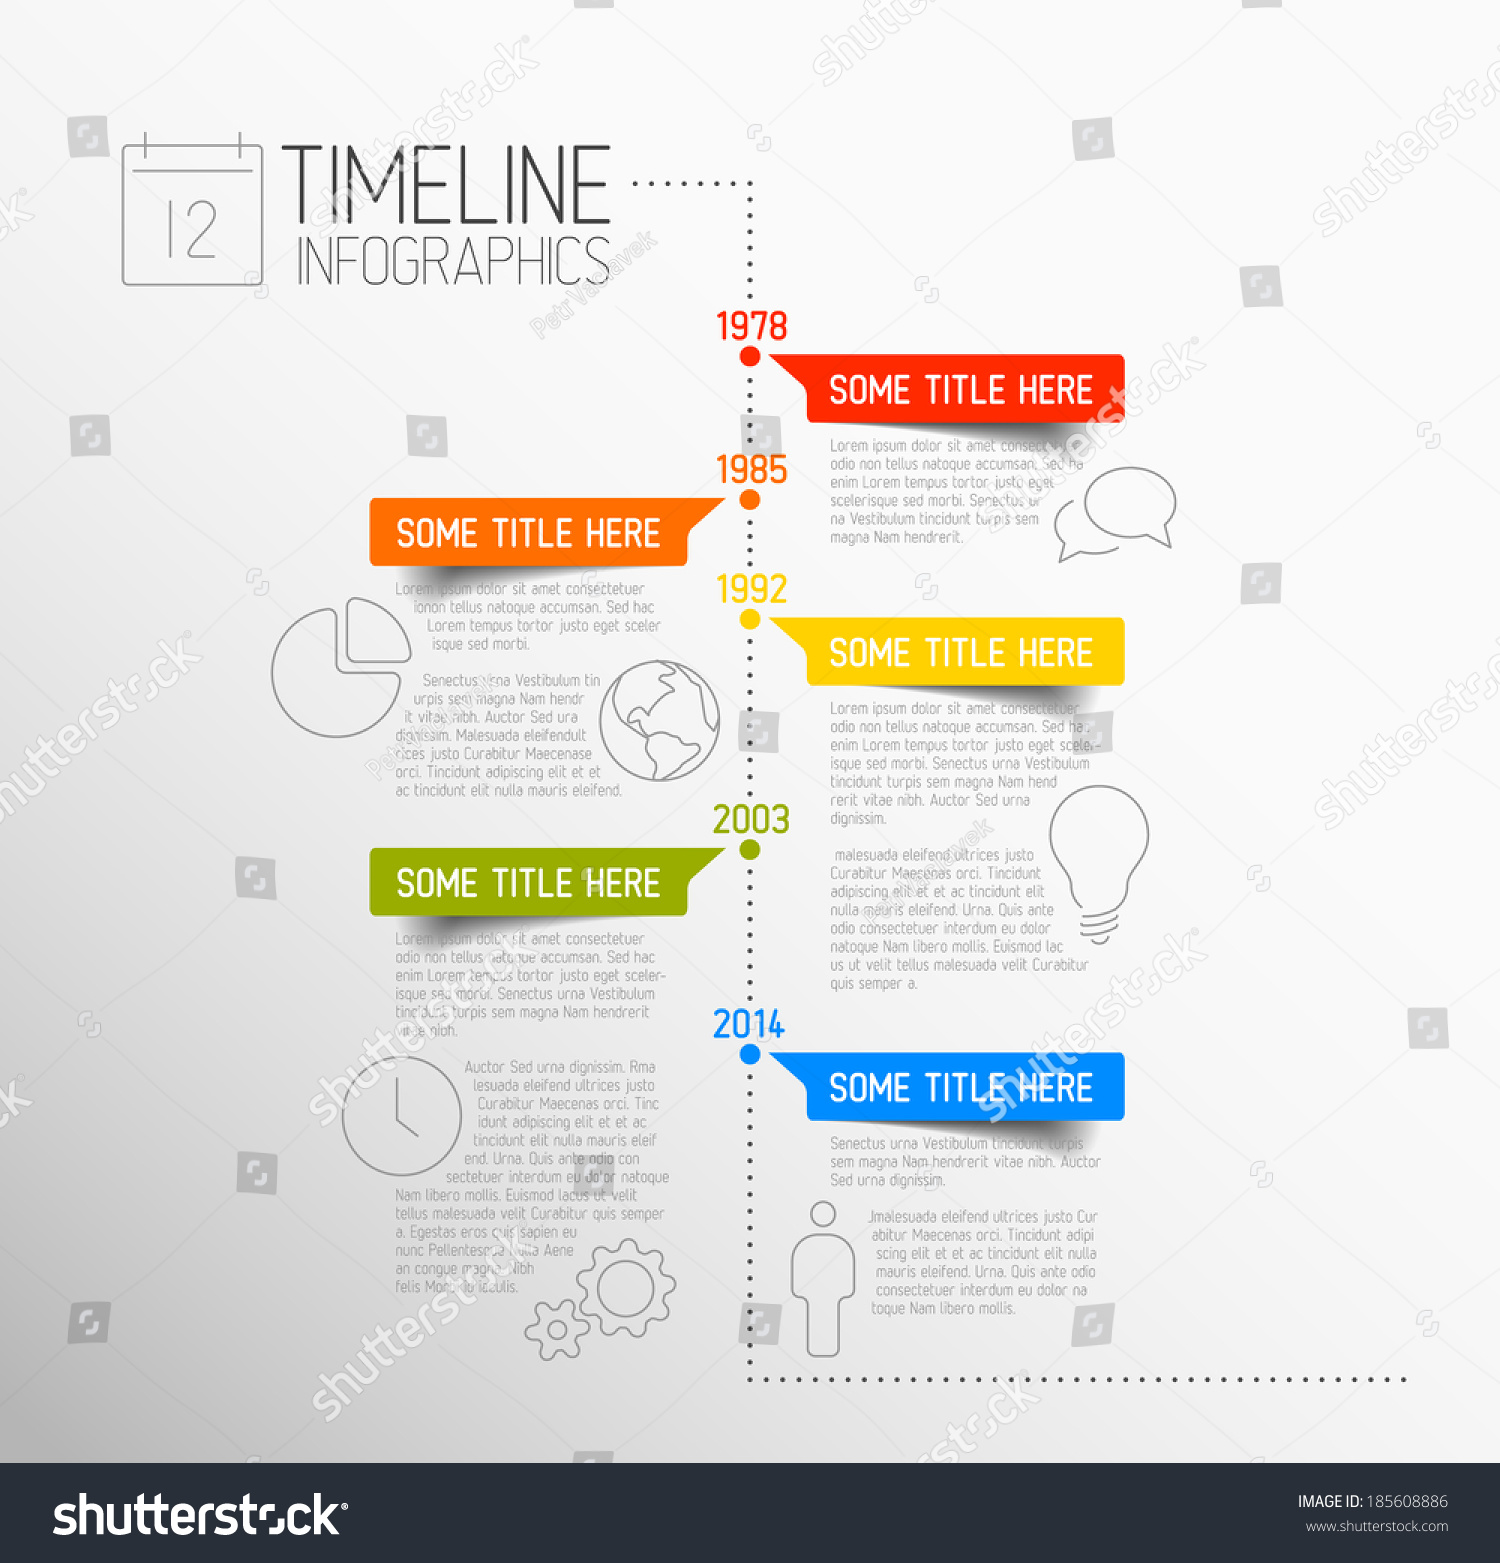 vector infographic timeline report template icons stock vector 185608886 shutterstock. Black Bedroom Furniture Sets. Home Design Ideas